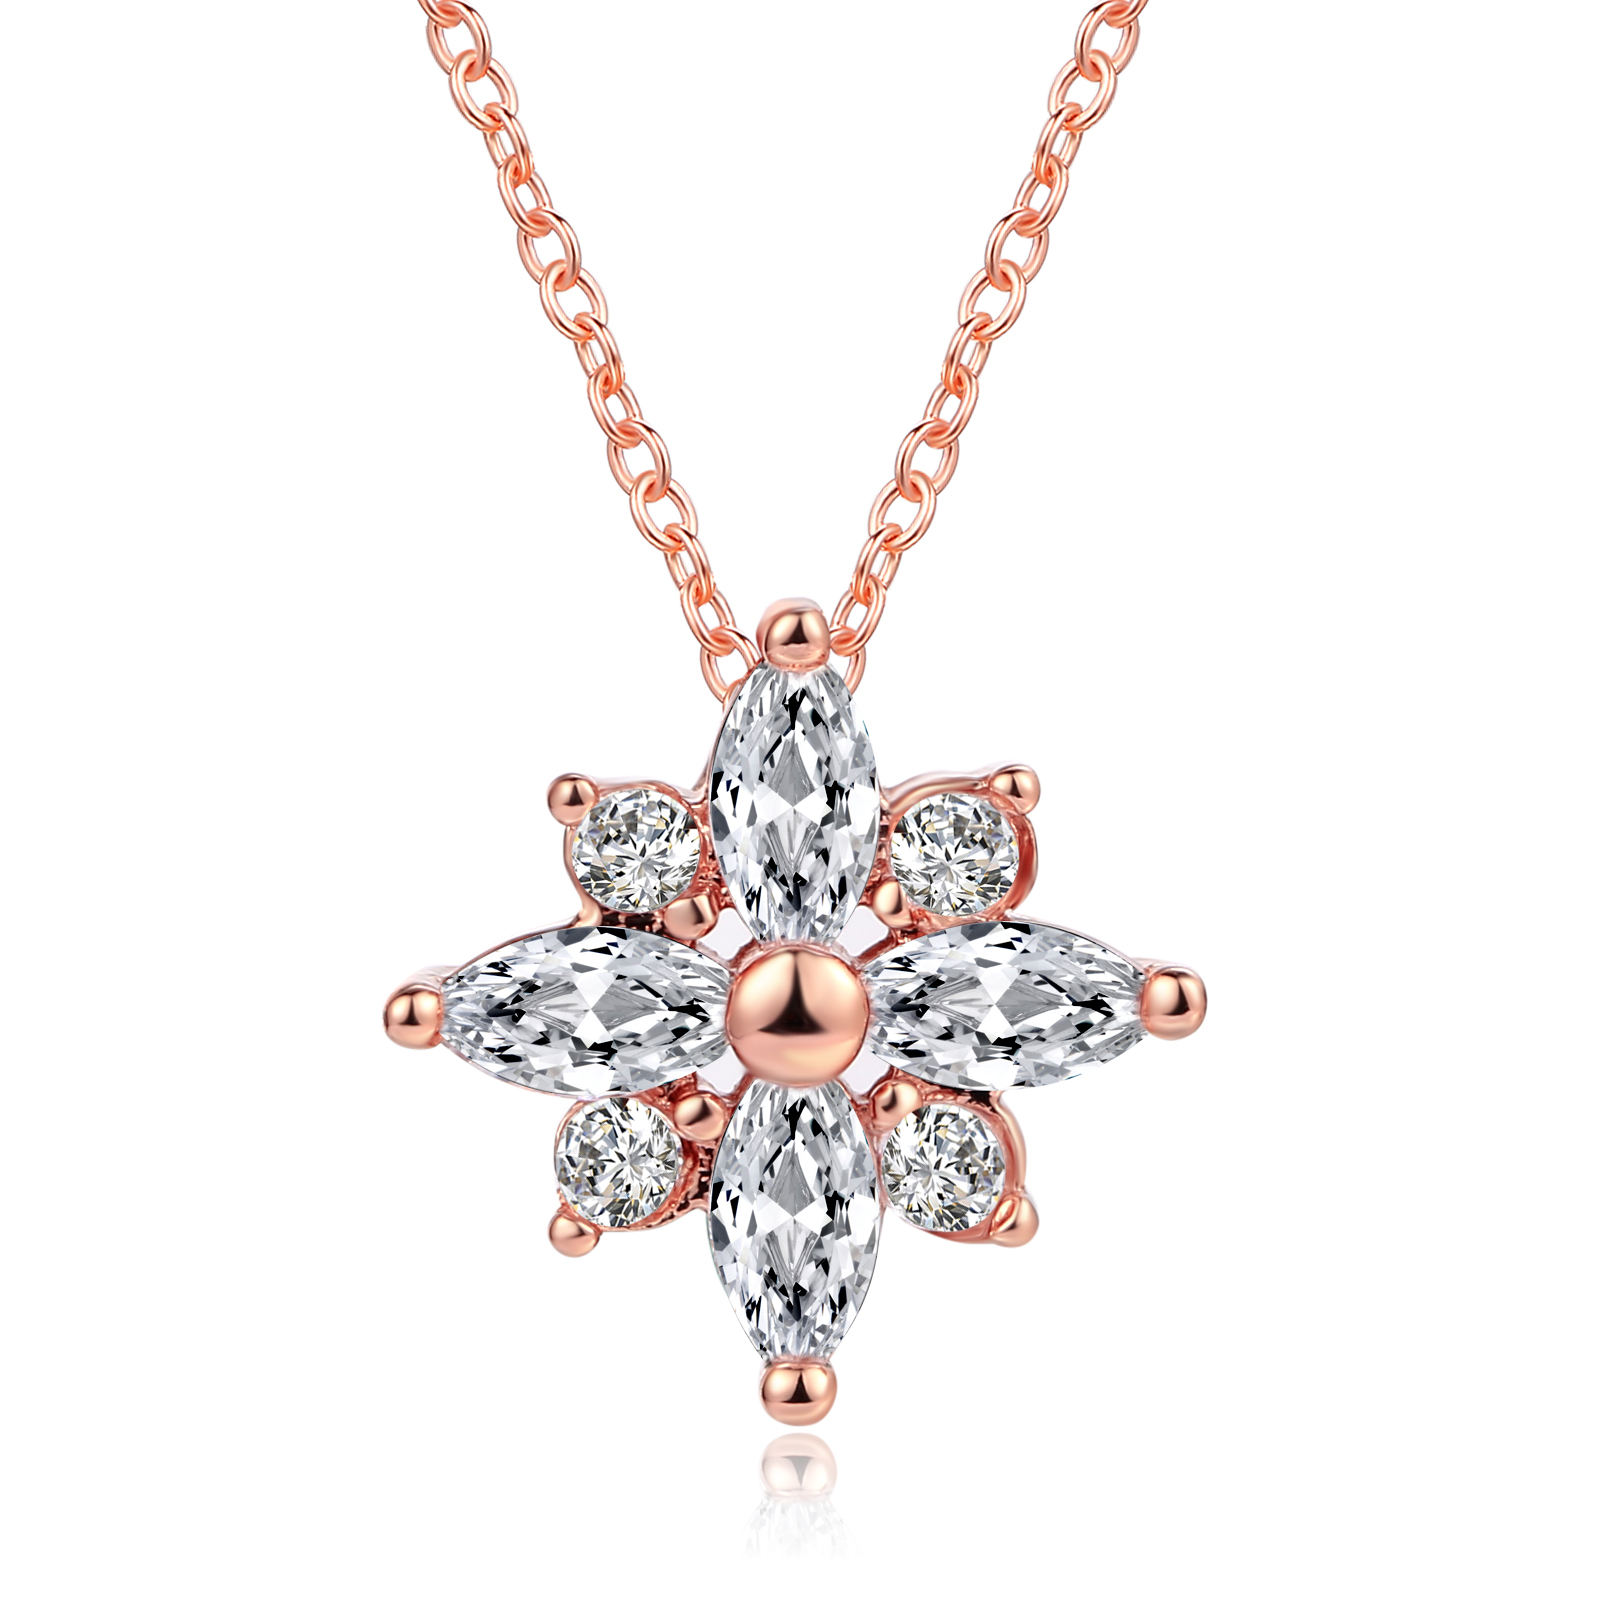 Wholesale New Year Christmas Gifts Cubic Zirconia Snowflake Pendant Necklace Jewelry for Girl N400-M